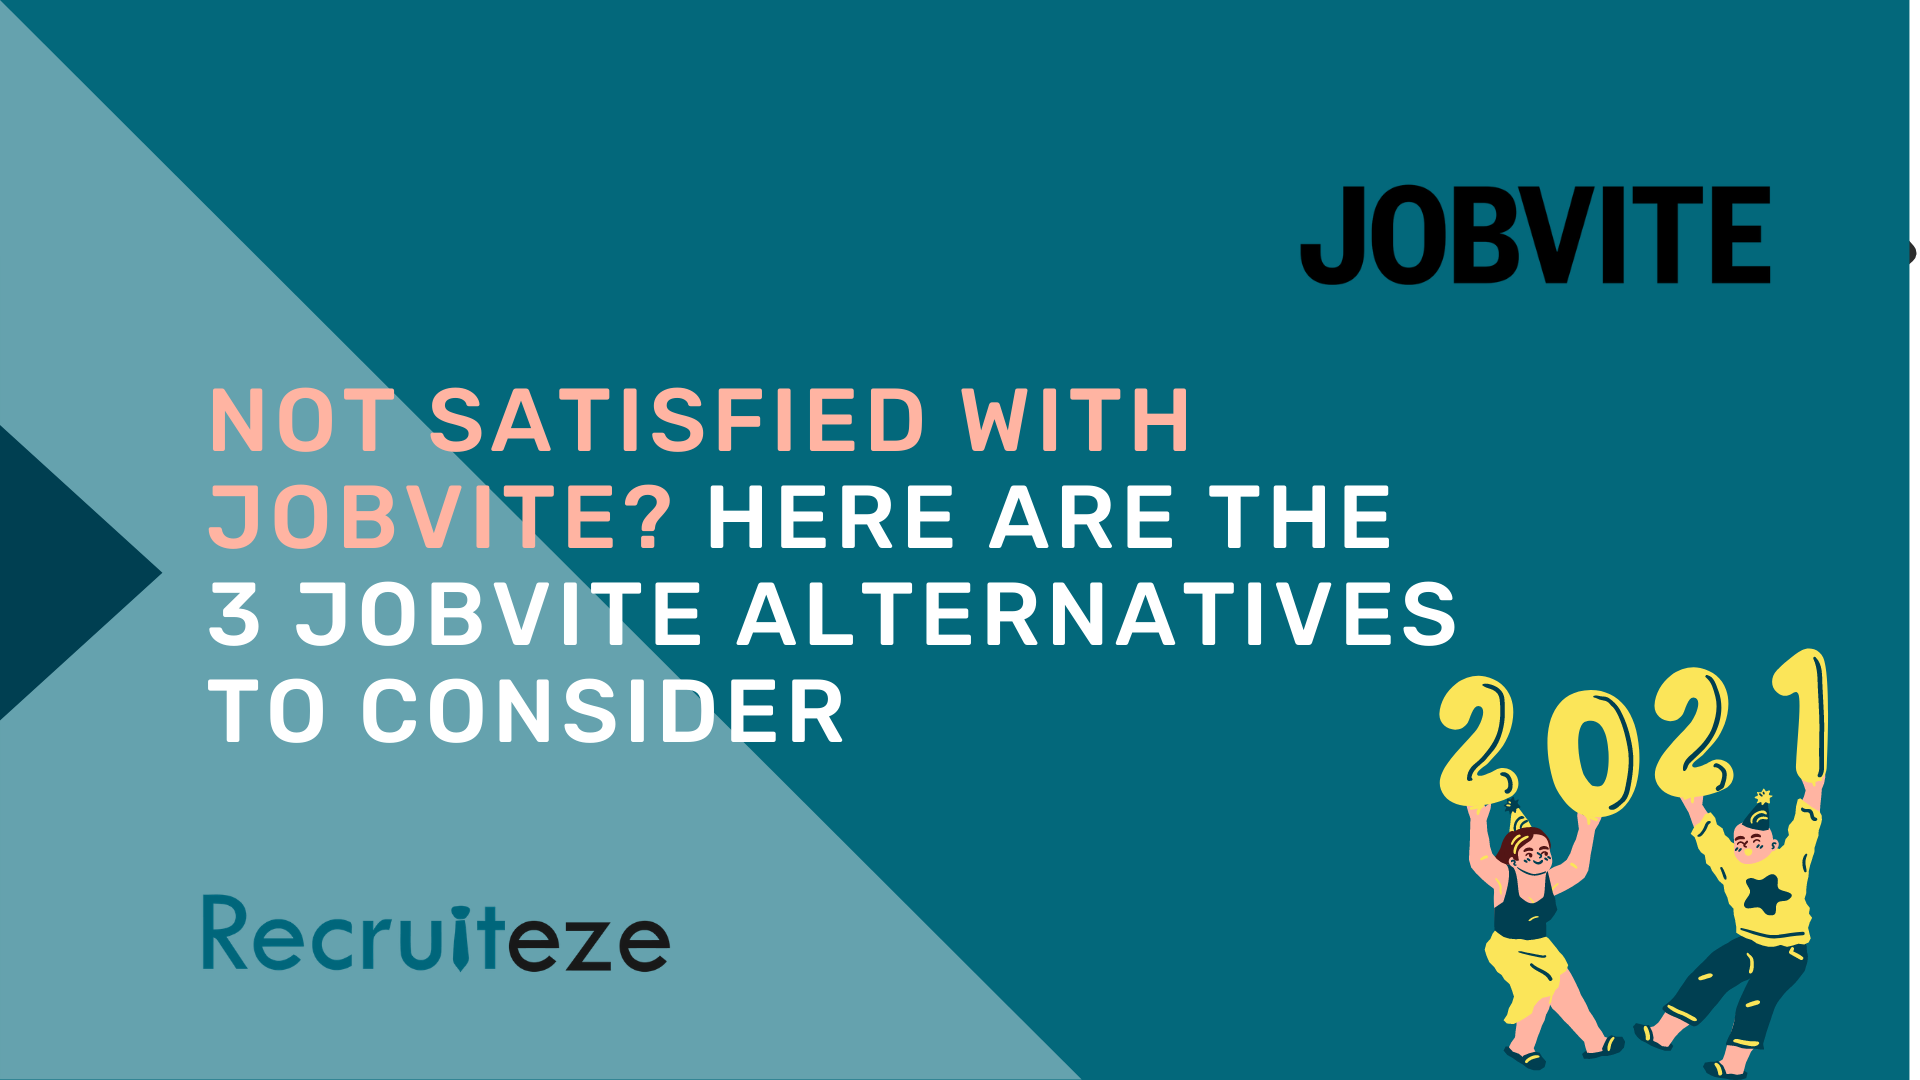 Not Satisfied With Jobvite? Here Are the 3 Jobvite Alternatives to Consider article featured image